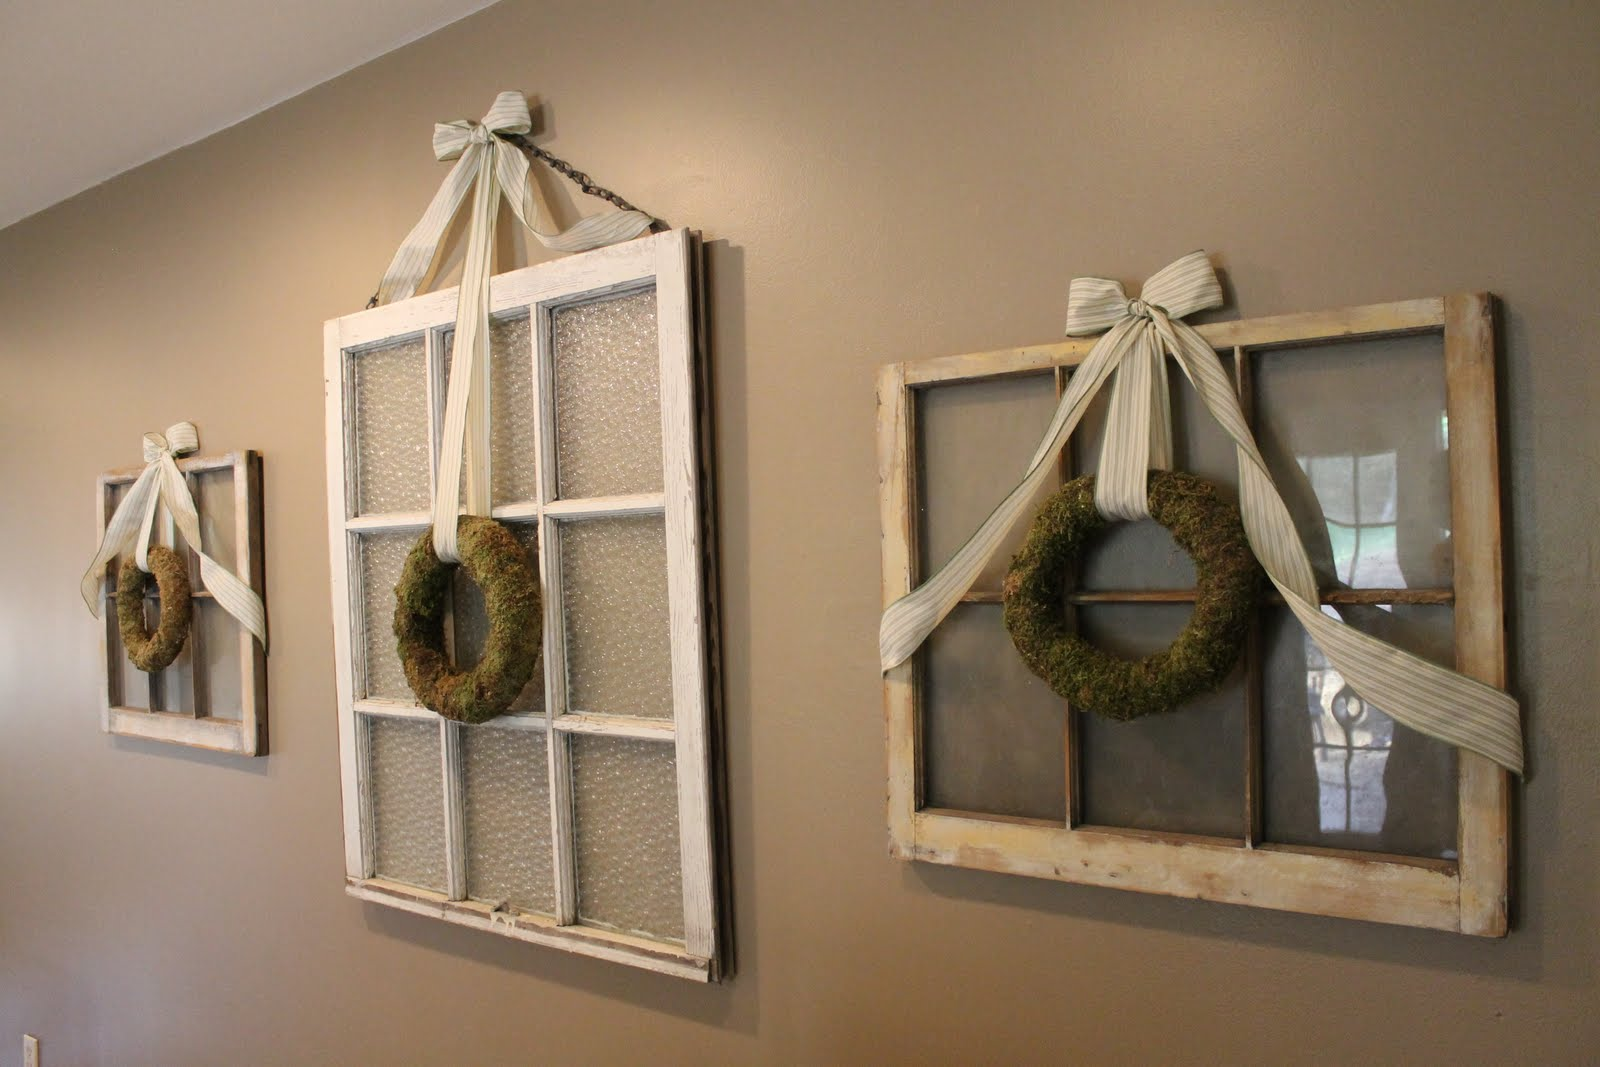 Sharing Some Good Decorating Ideas